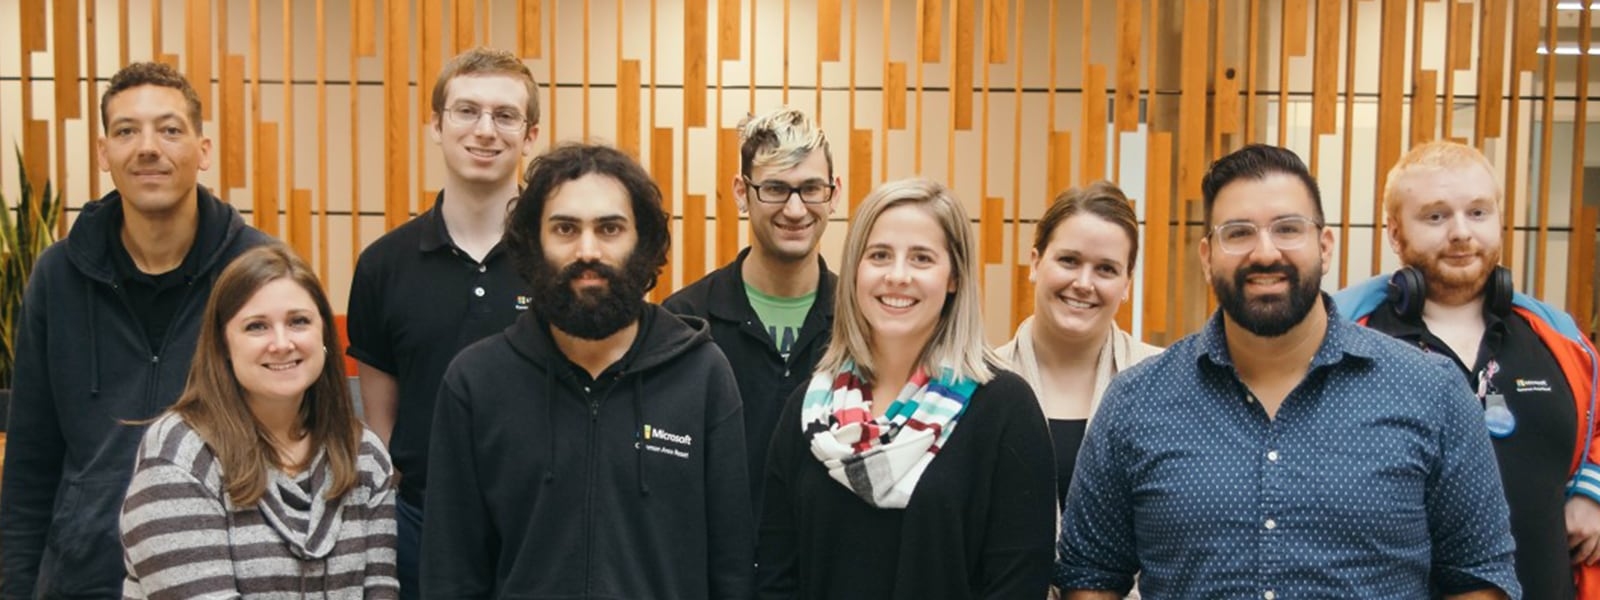 A small group of diverse people in the Supported Employment Program at Microsoft, smiling.